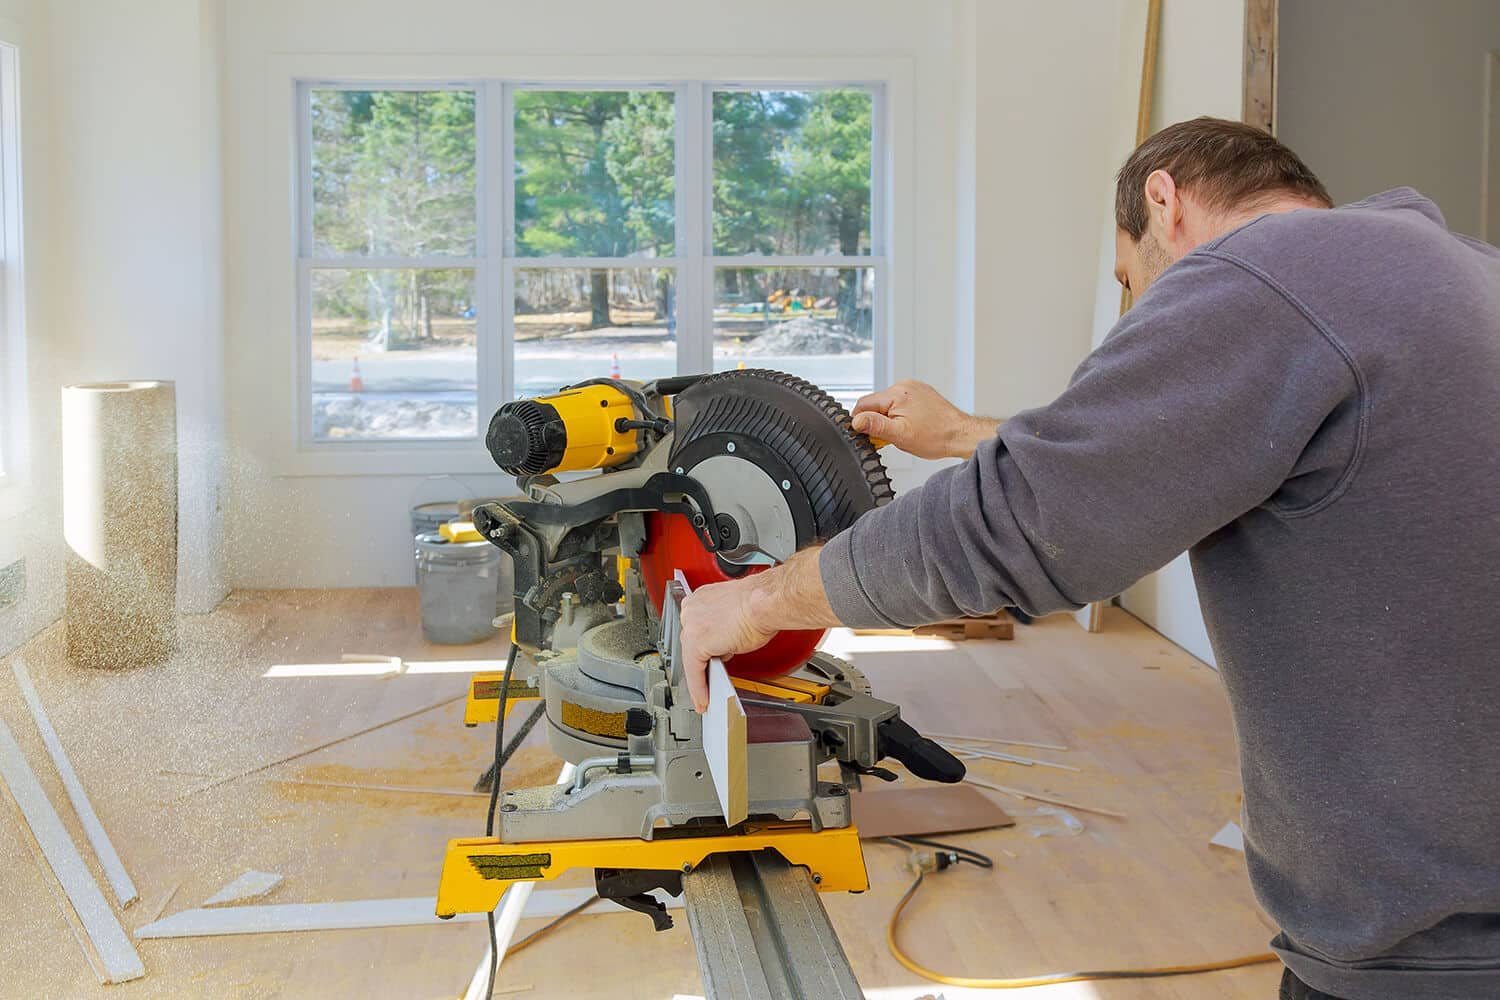 The Inside Corner Cuts Baseboards With a Miter Saw